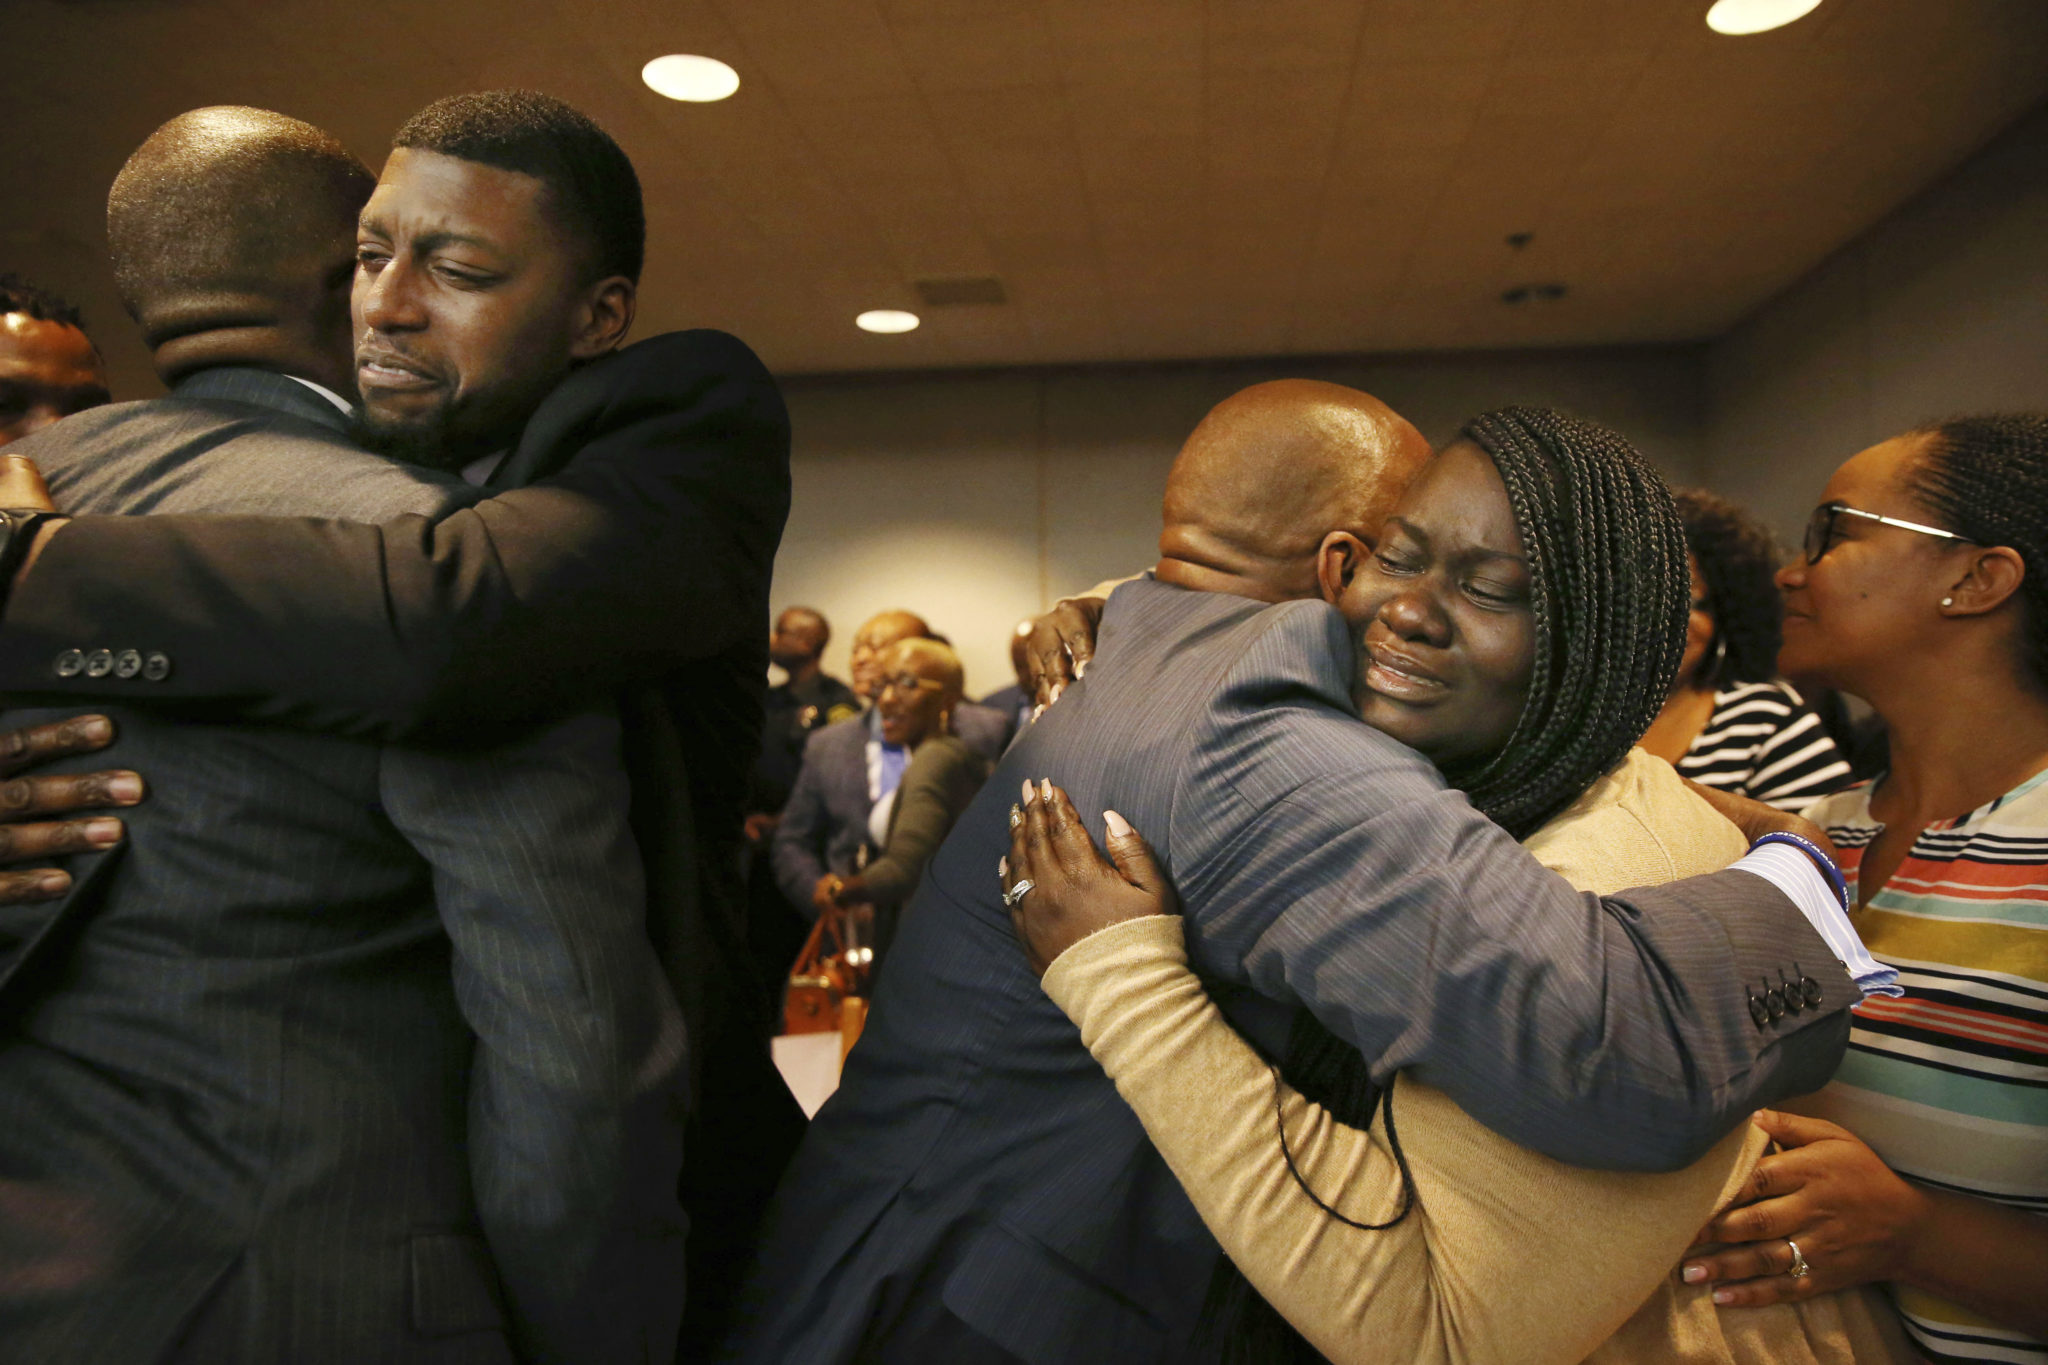 Odell Edwards and Charmaine Edwards, parents of 15-year-old Jordan Edwards, react to a guilty of murder verdict during a trial of fired Balch Springs police officer Roy Oliver.